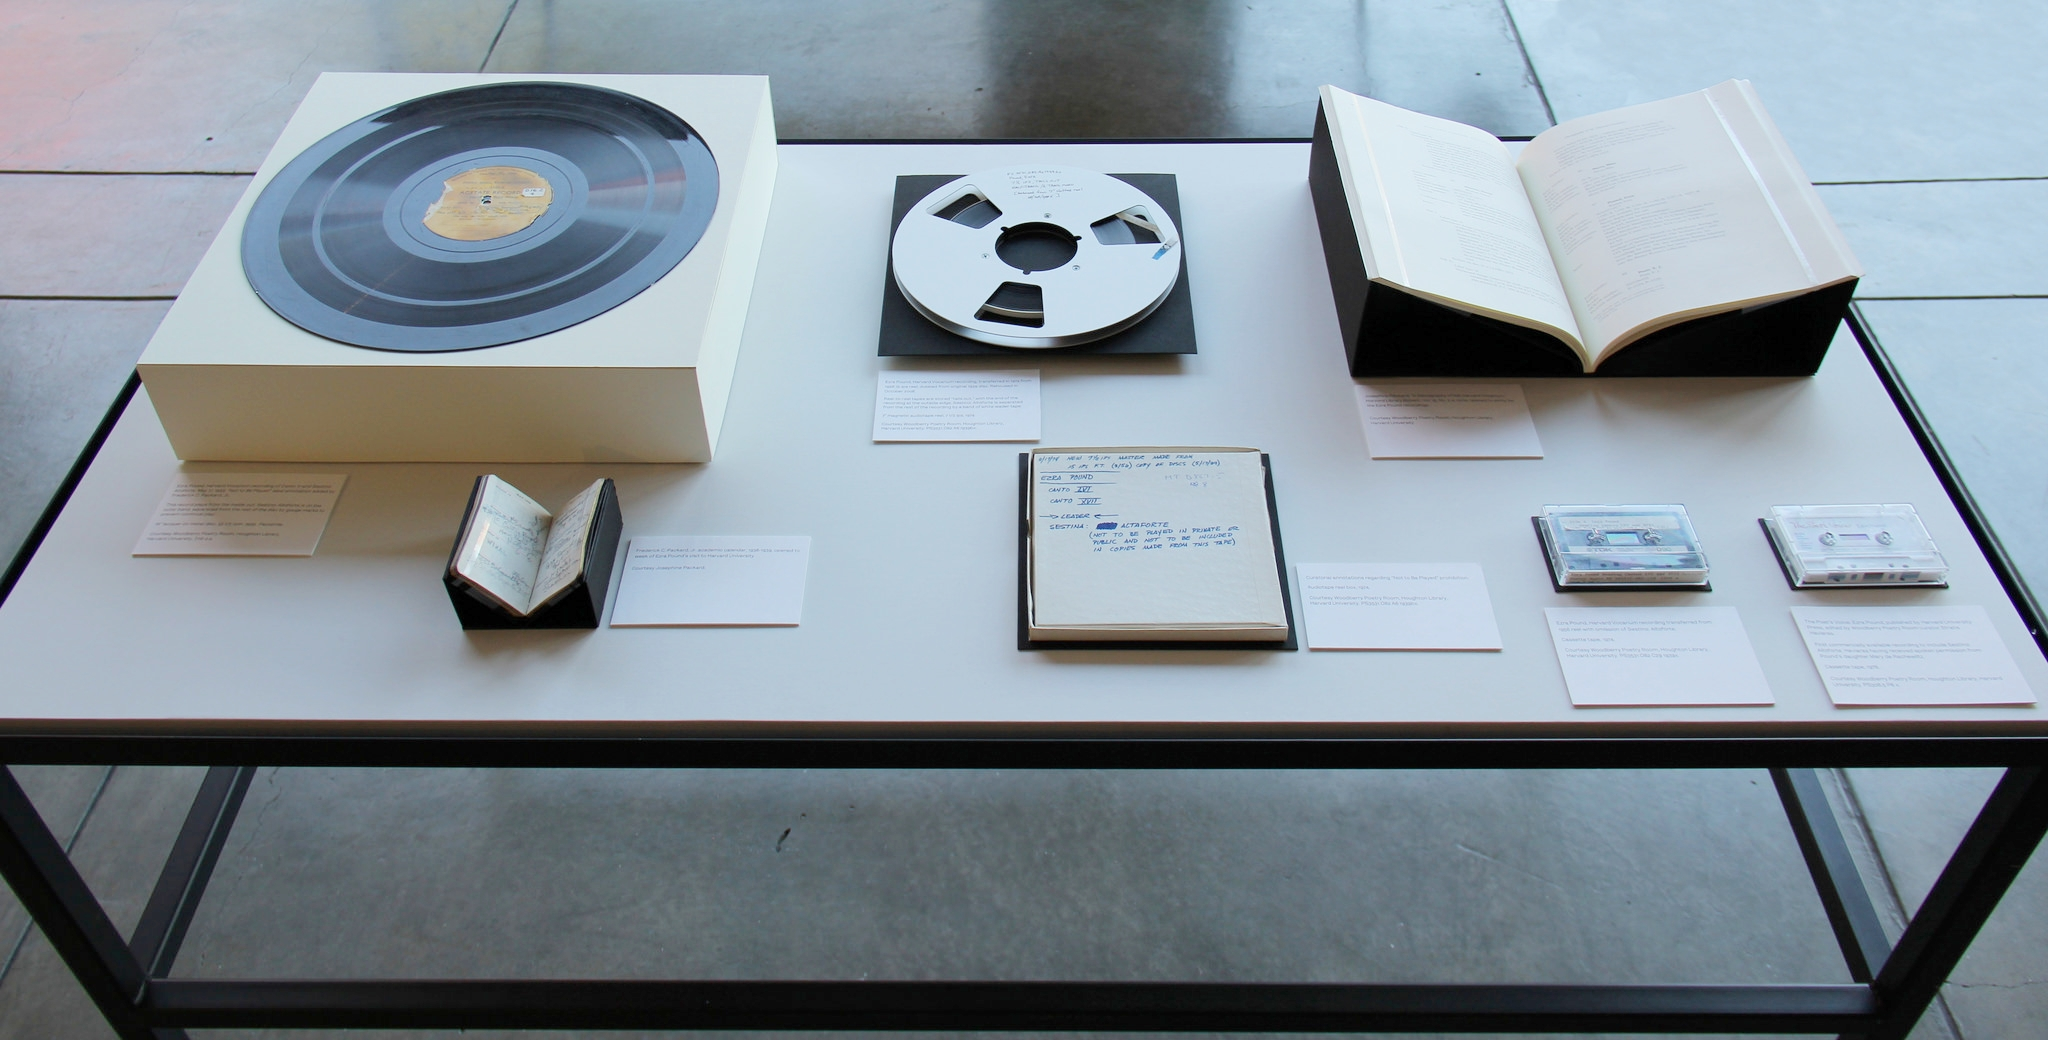 Damon Krukowski:NOT TO BE PLAYED  is a multifaceted exhibition featuring archival materials, performance, and a publication that together revive an obscure audio recording made by Ezra Pound at Harvard University in 1939. October 8–23, 2015.